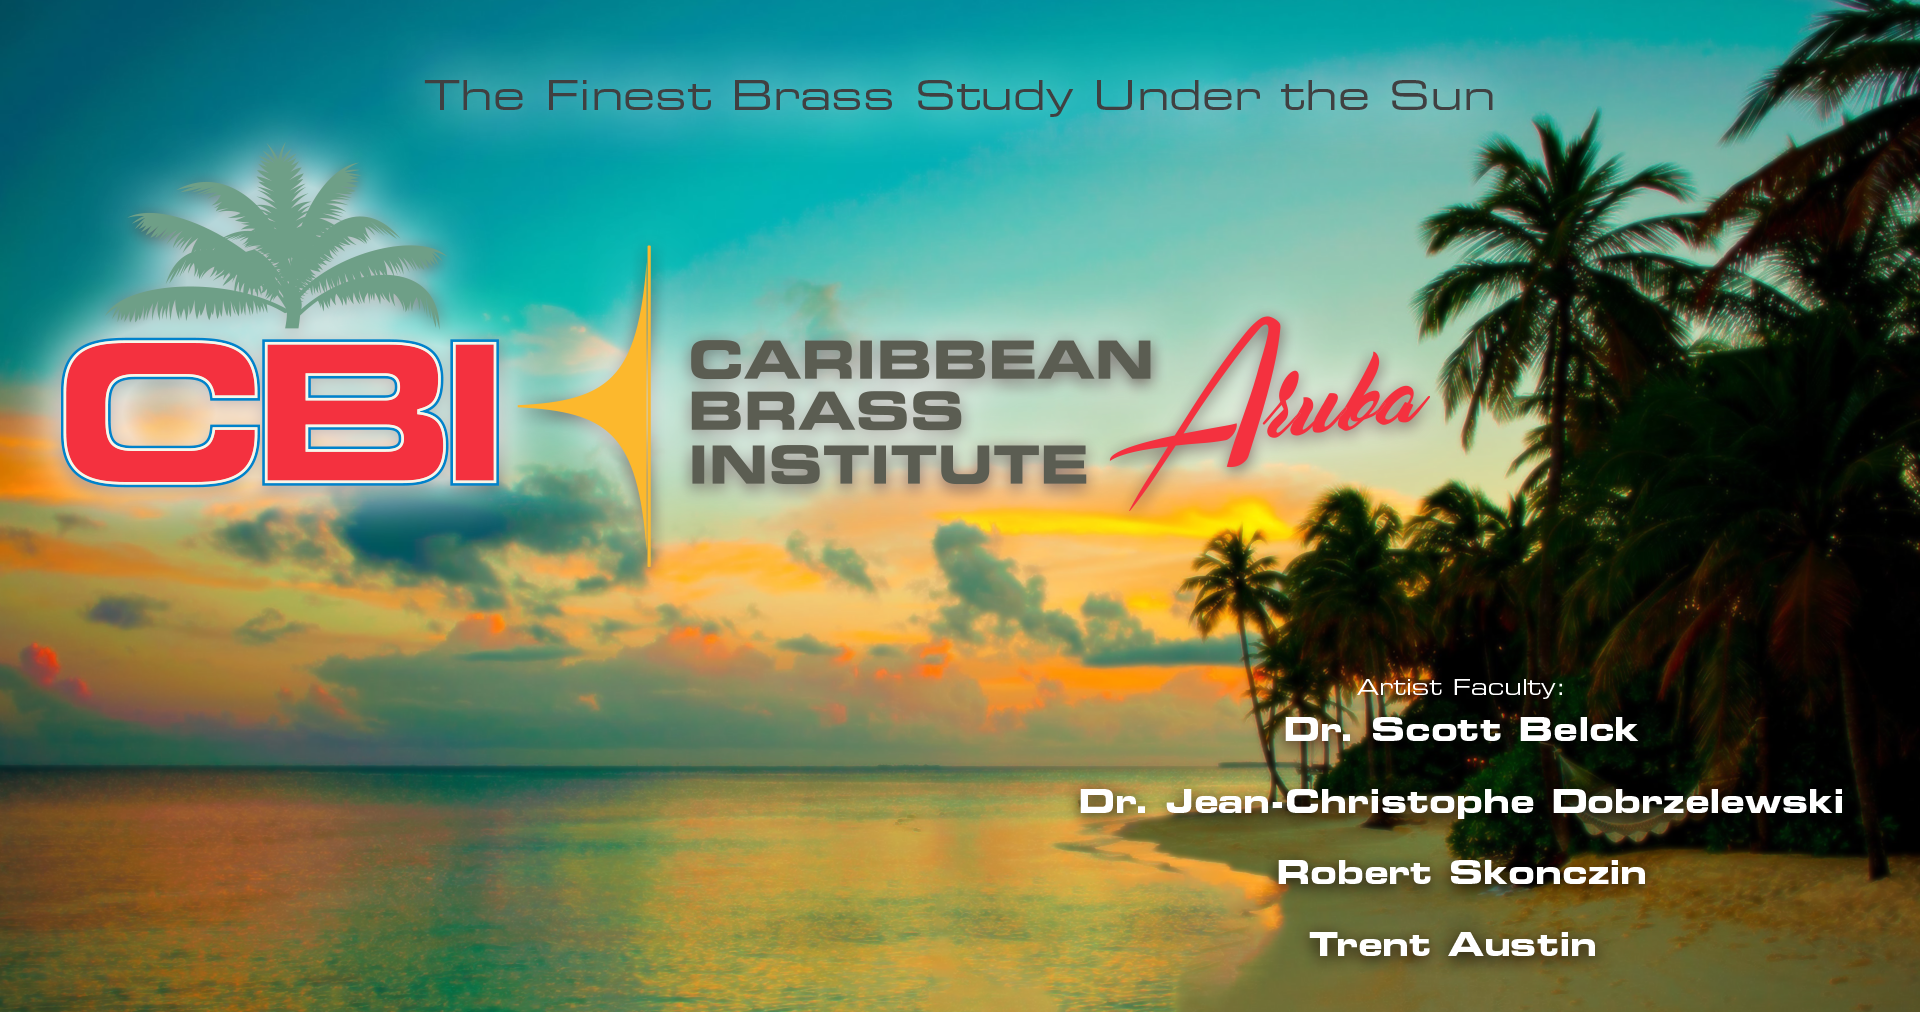 CARIBBEAN BRASS INSTITUTE